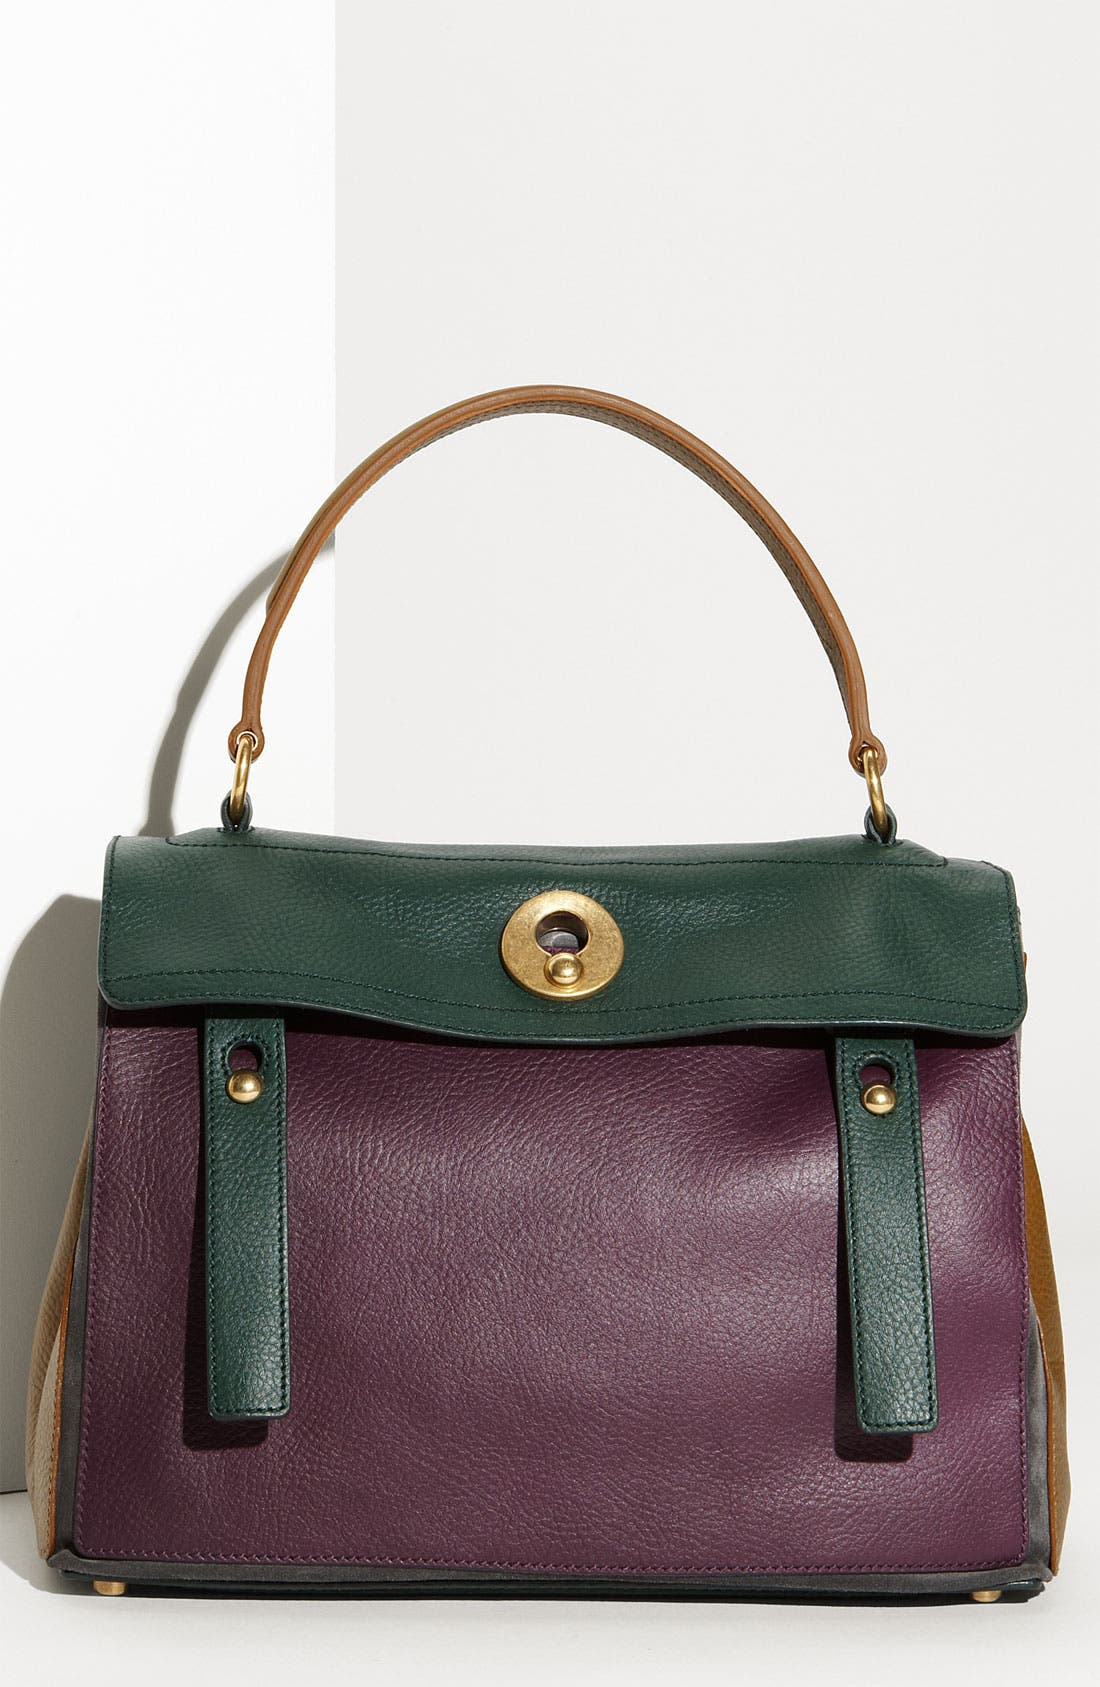 Main Image - Yves Saint Laurent 'Muse Two' Leather & Suede Satchel